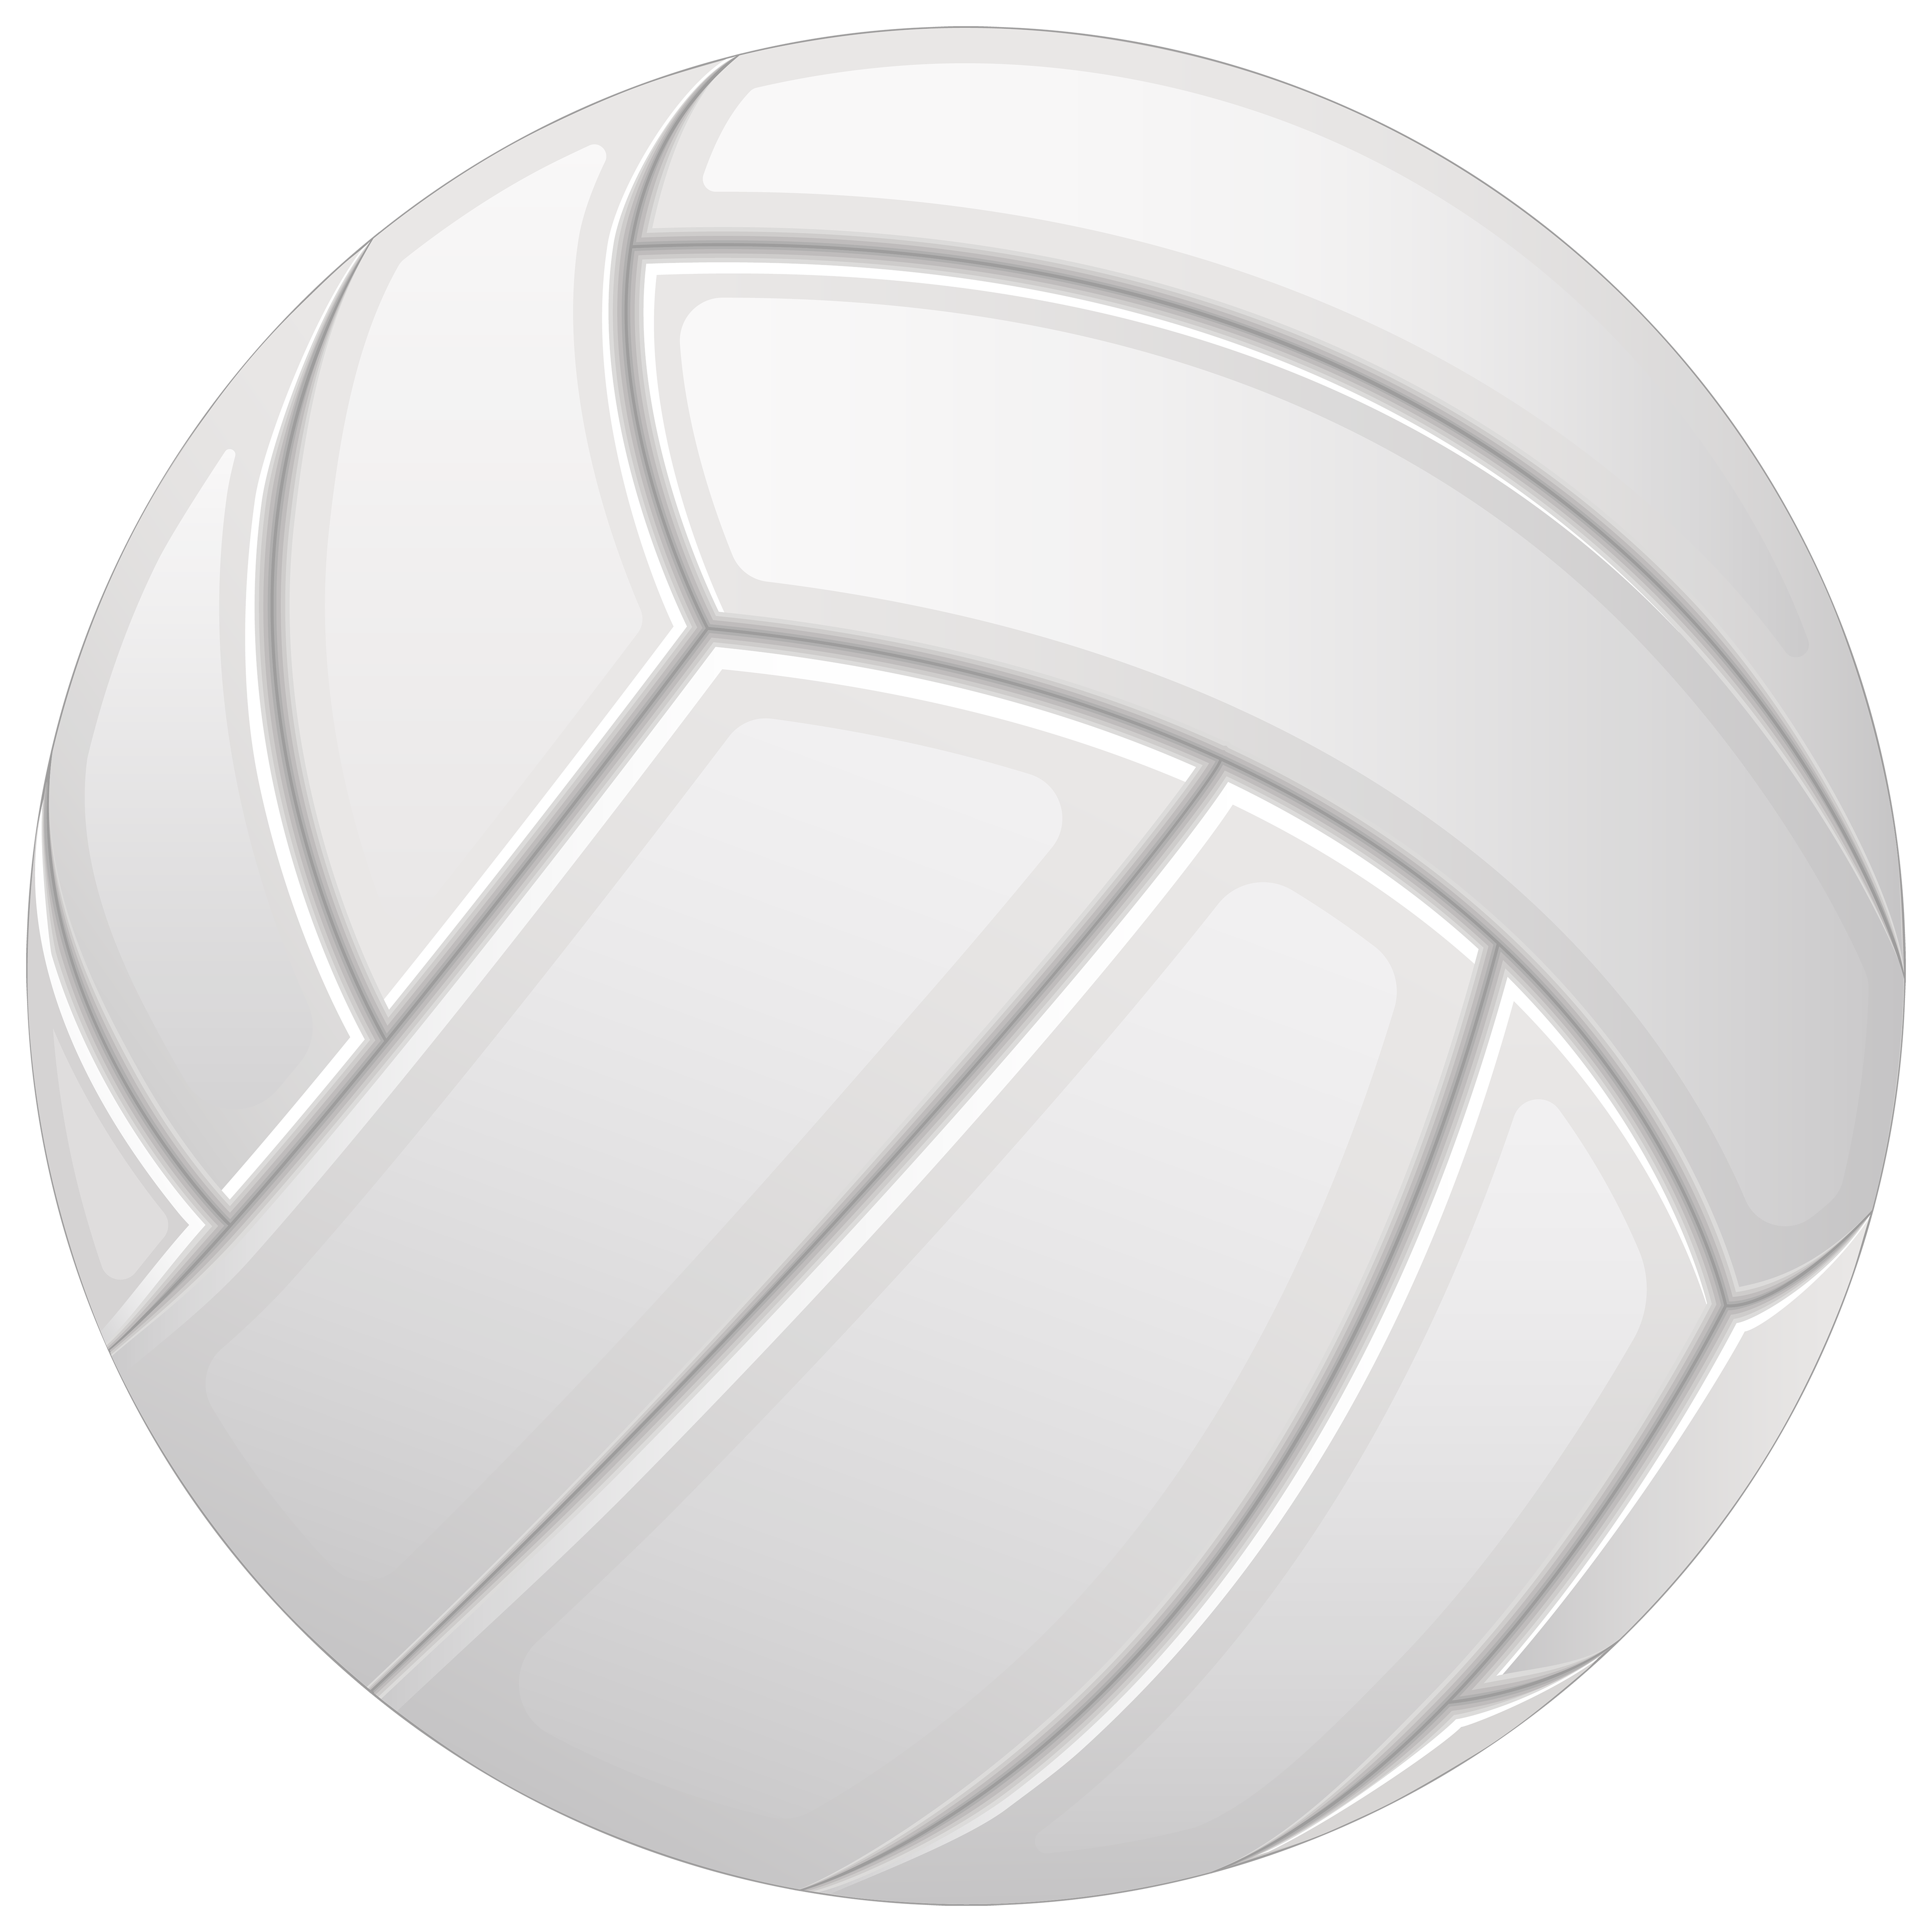 Volleyball palm trees sun clipart picture transparent library Volleyball PNG Clipart - Best WEB Clipart picture transparent library